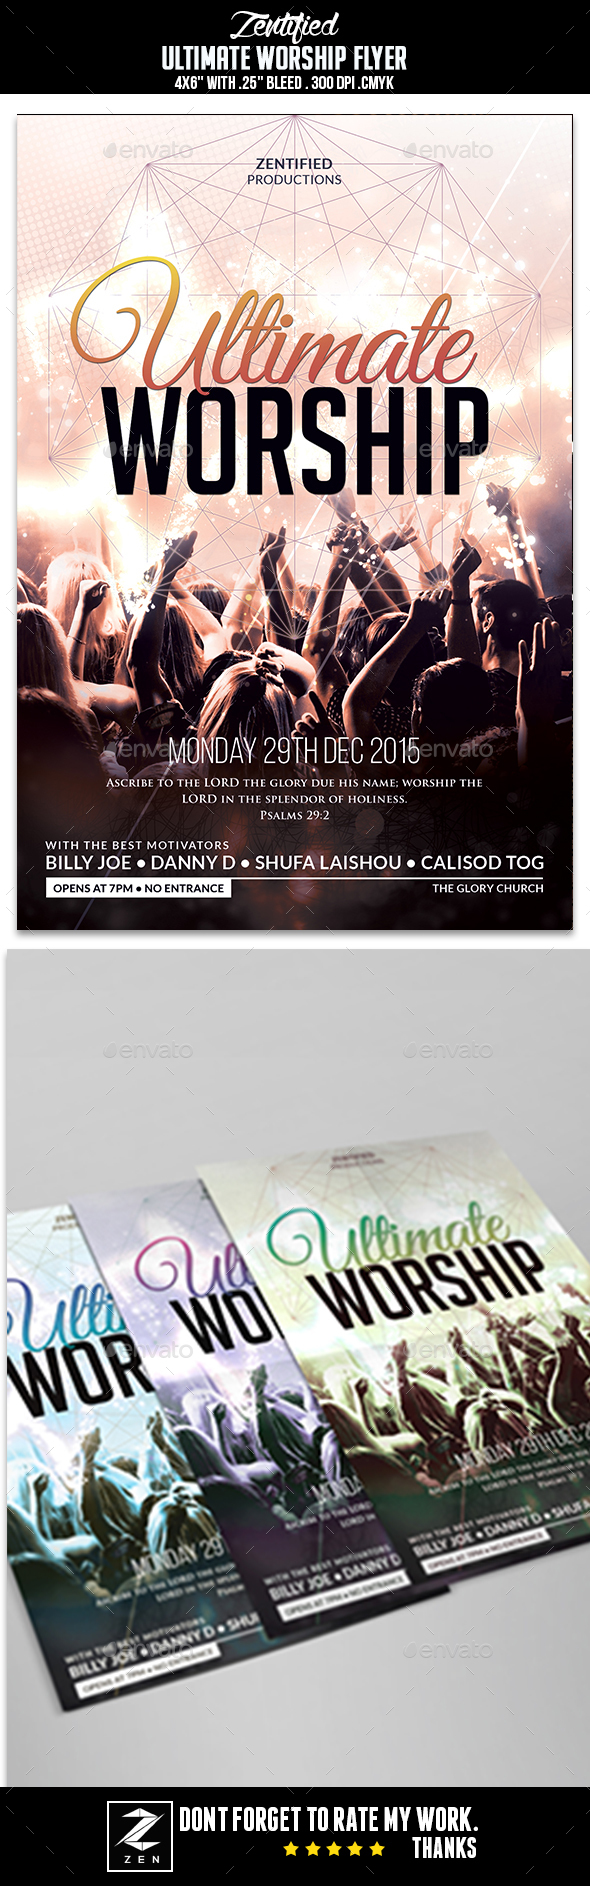 Ultimate Worship Flyer - Events Flyers